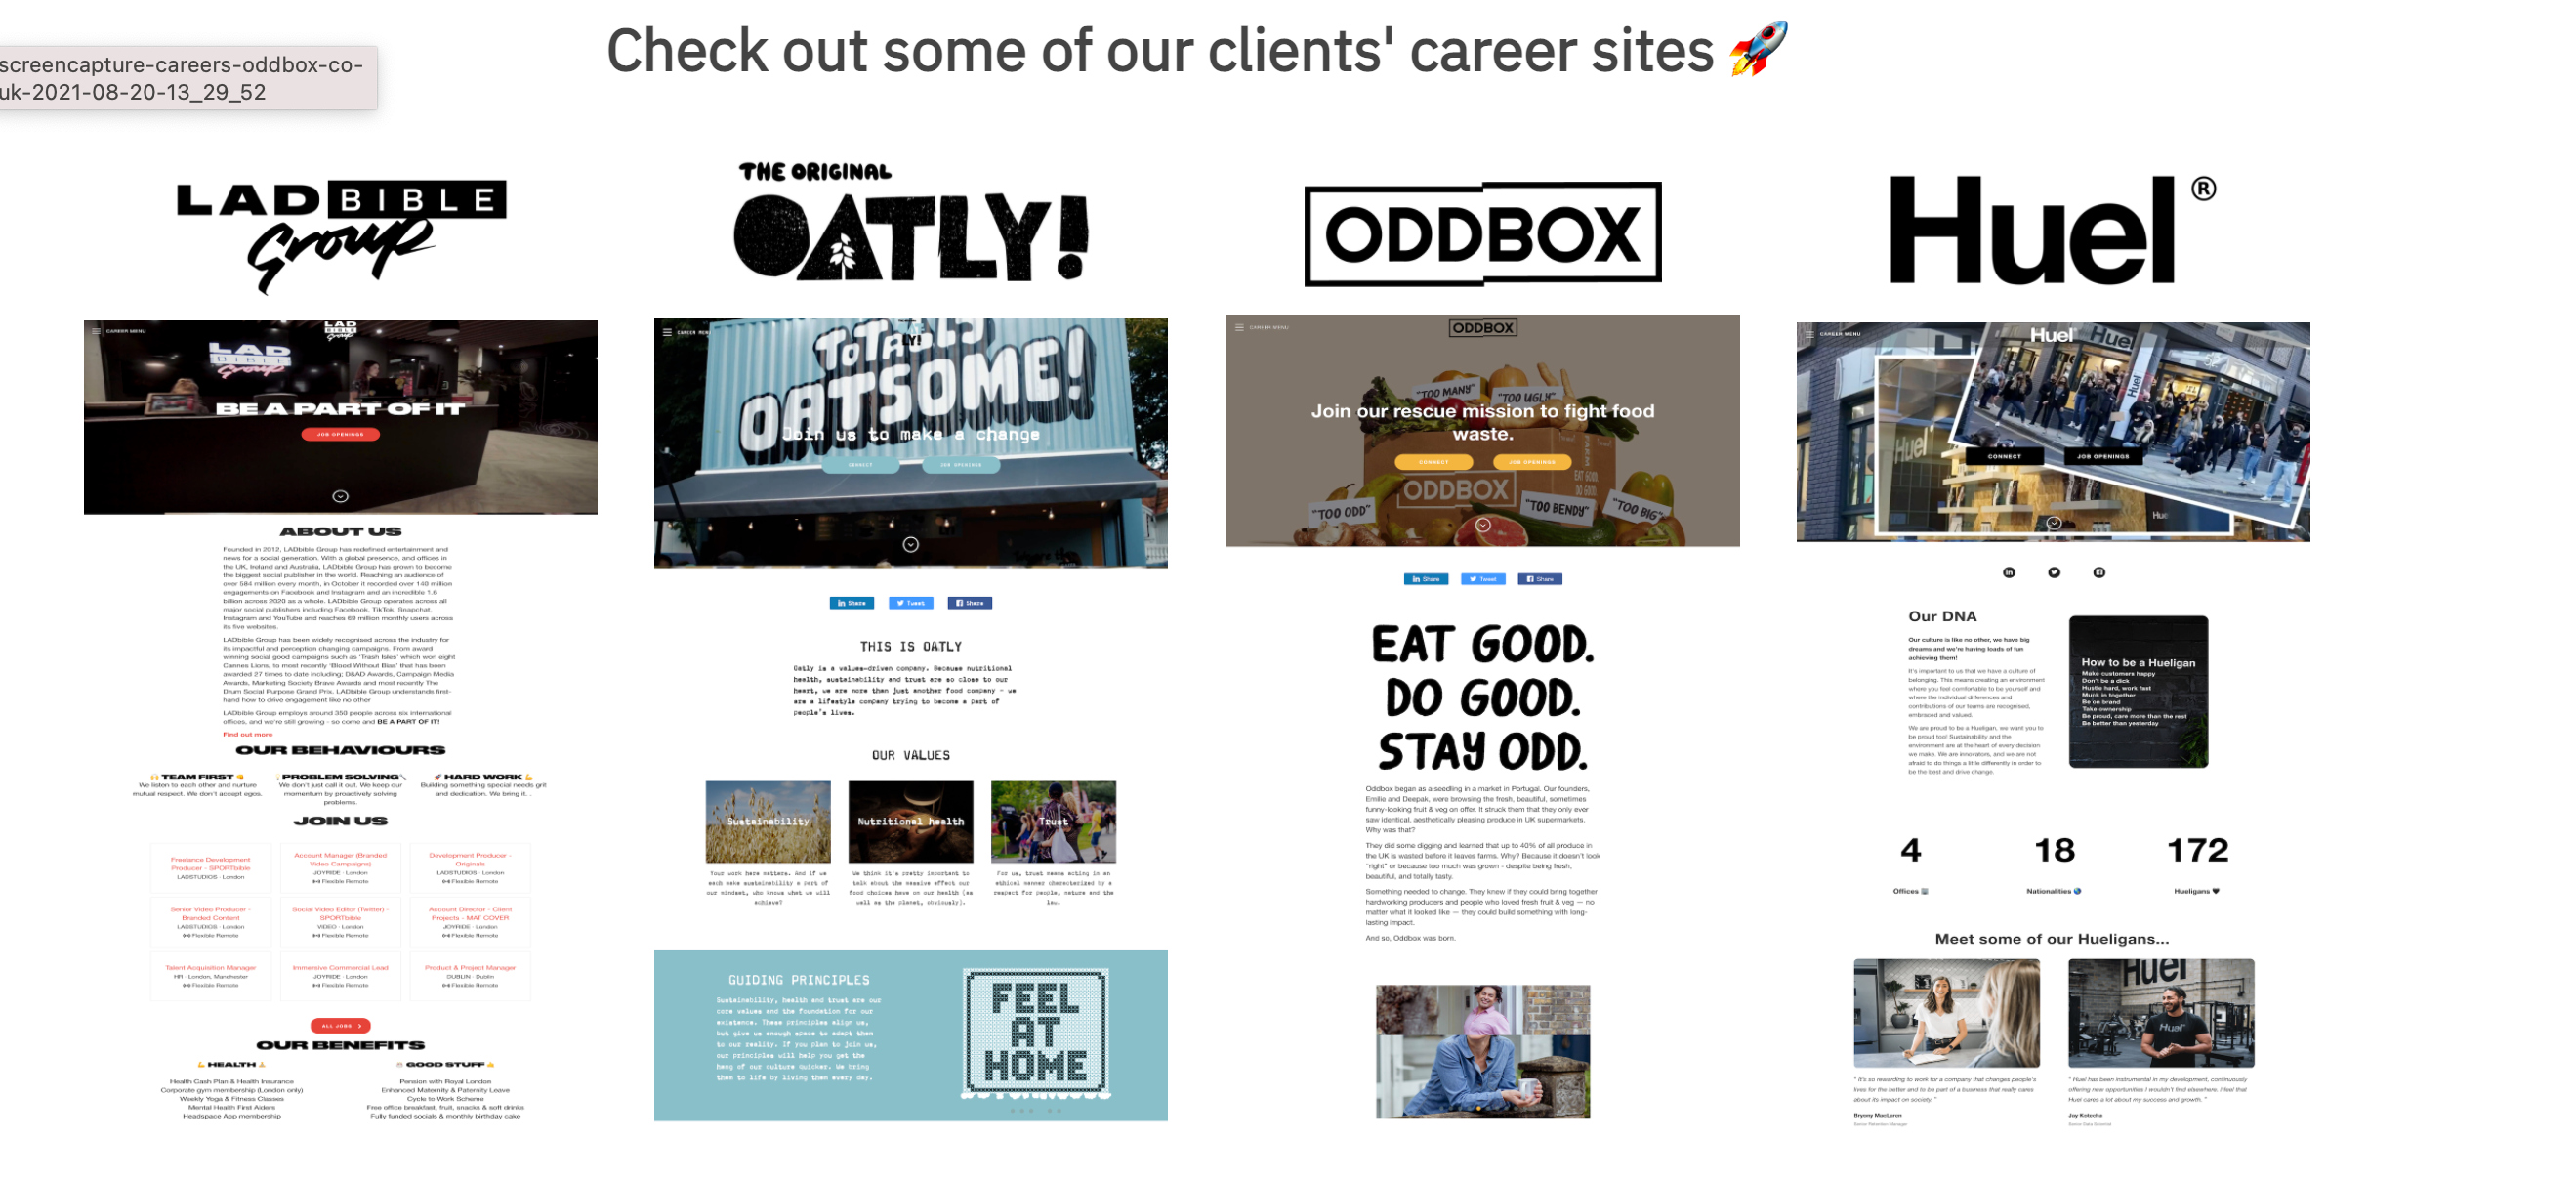 Teamtailor Software - Careers site